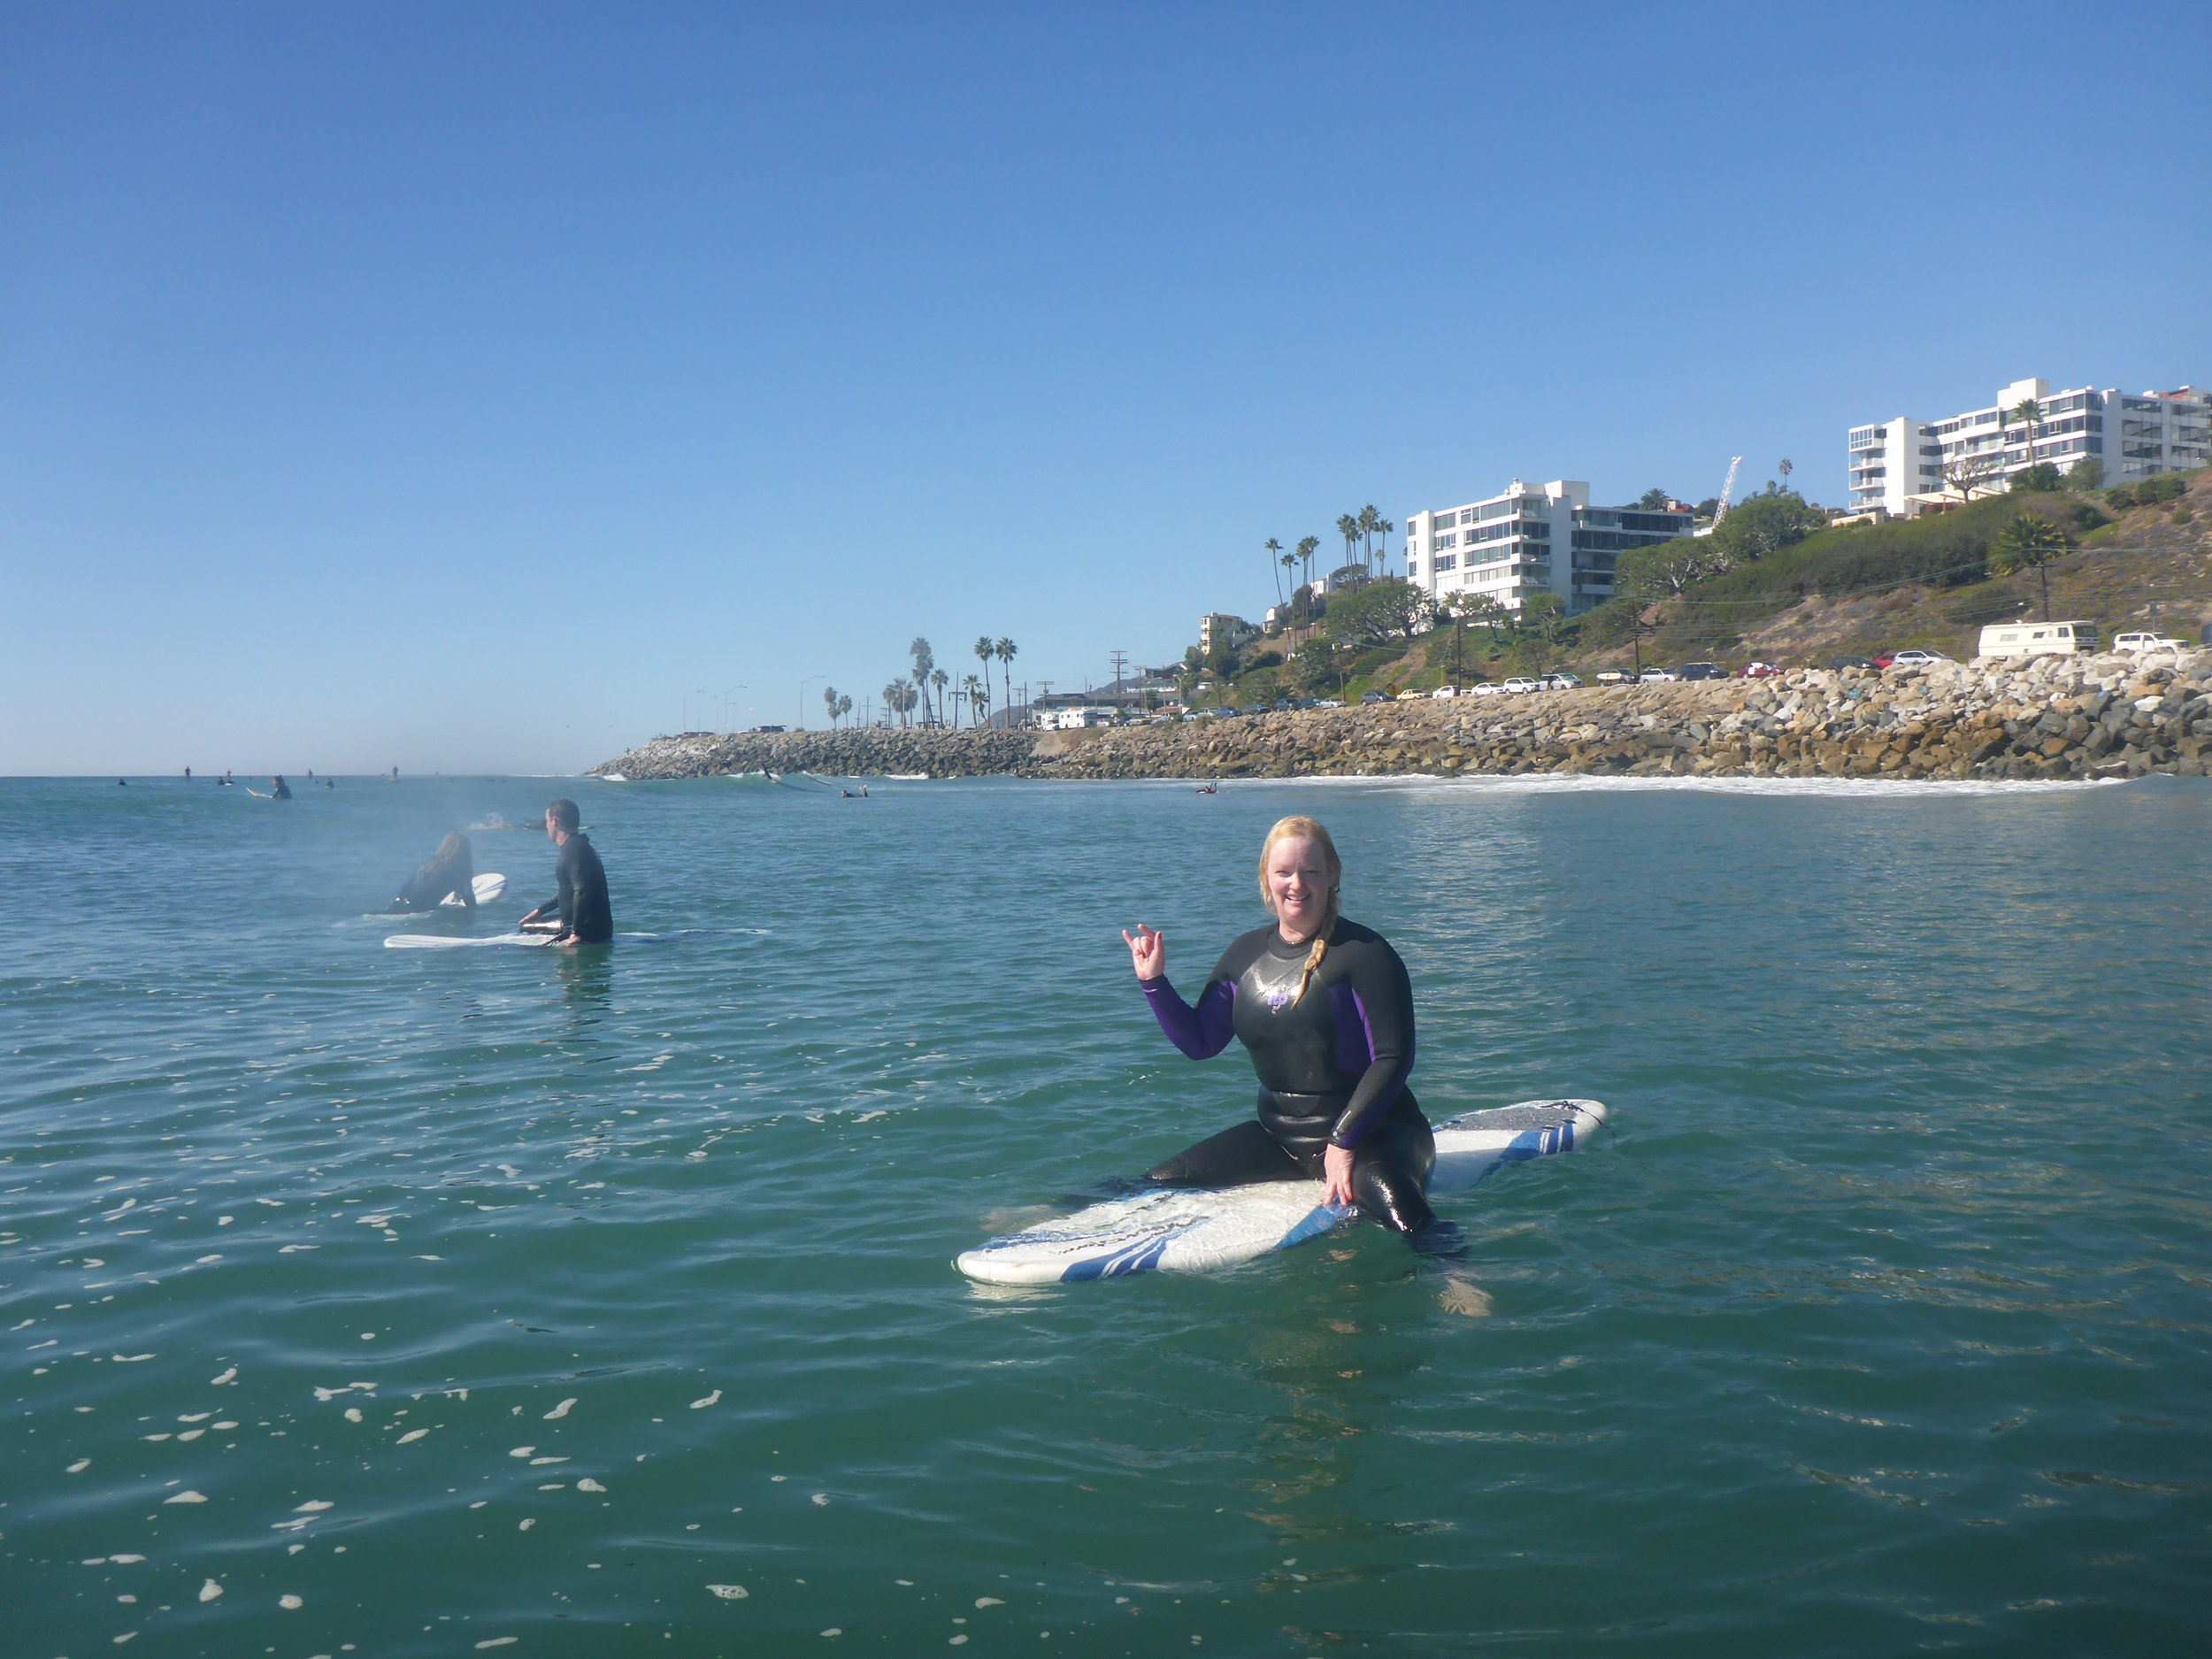 Surf Lessons In Malibu